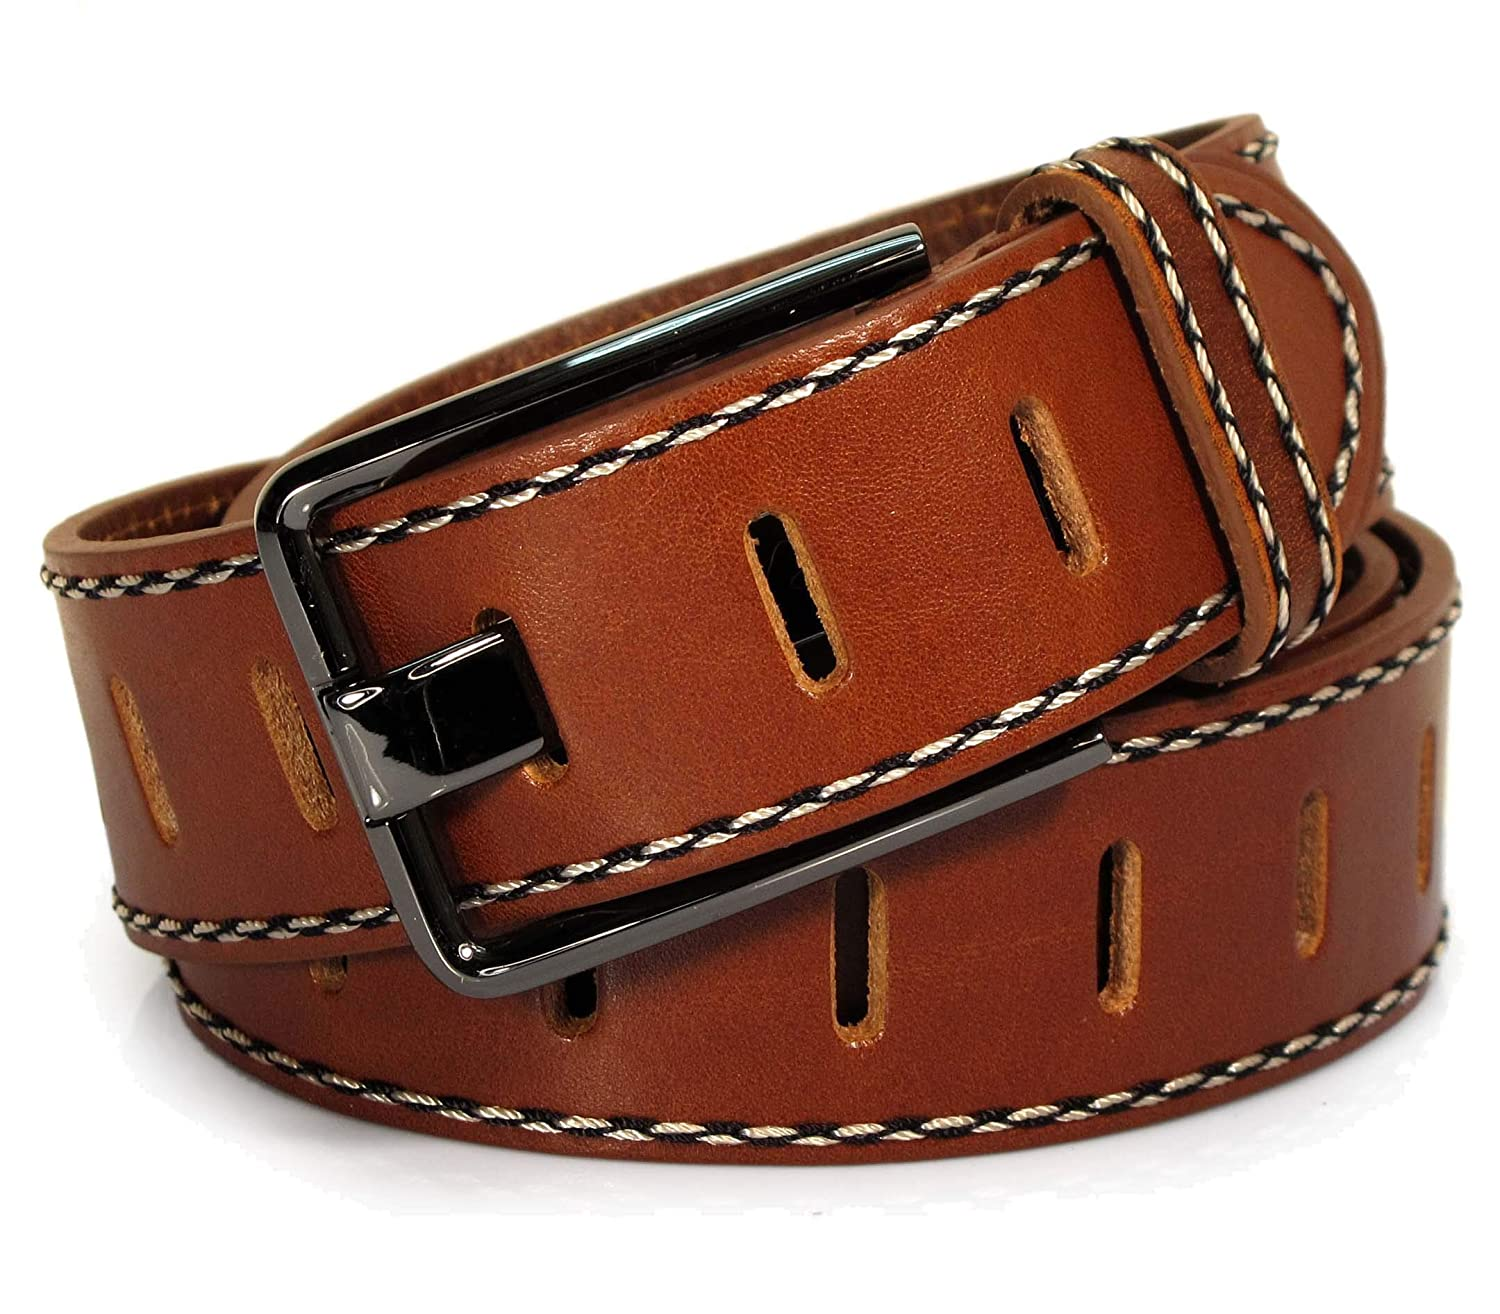 UM2 Mens Real Genuine Leather Tan Brown Belt 1.5 Wide S-L Thick Casual Jeans